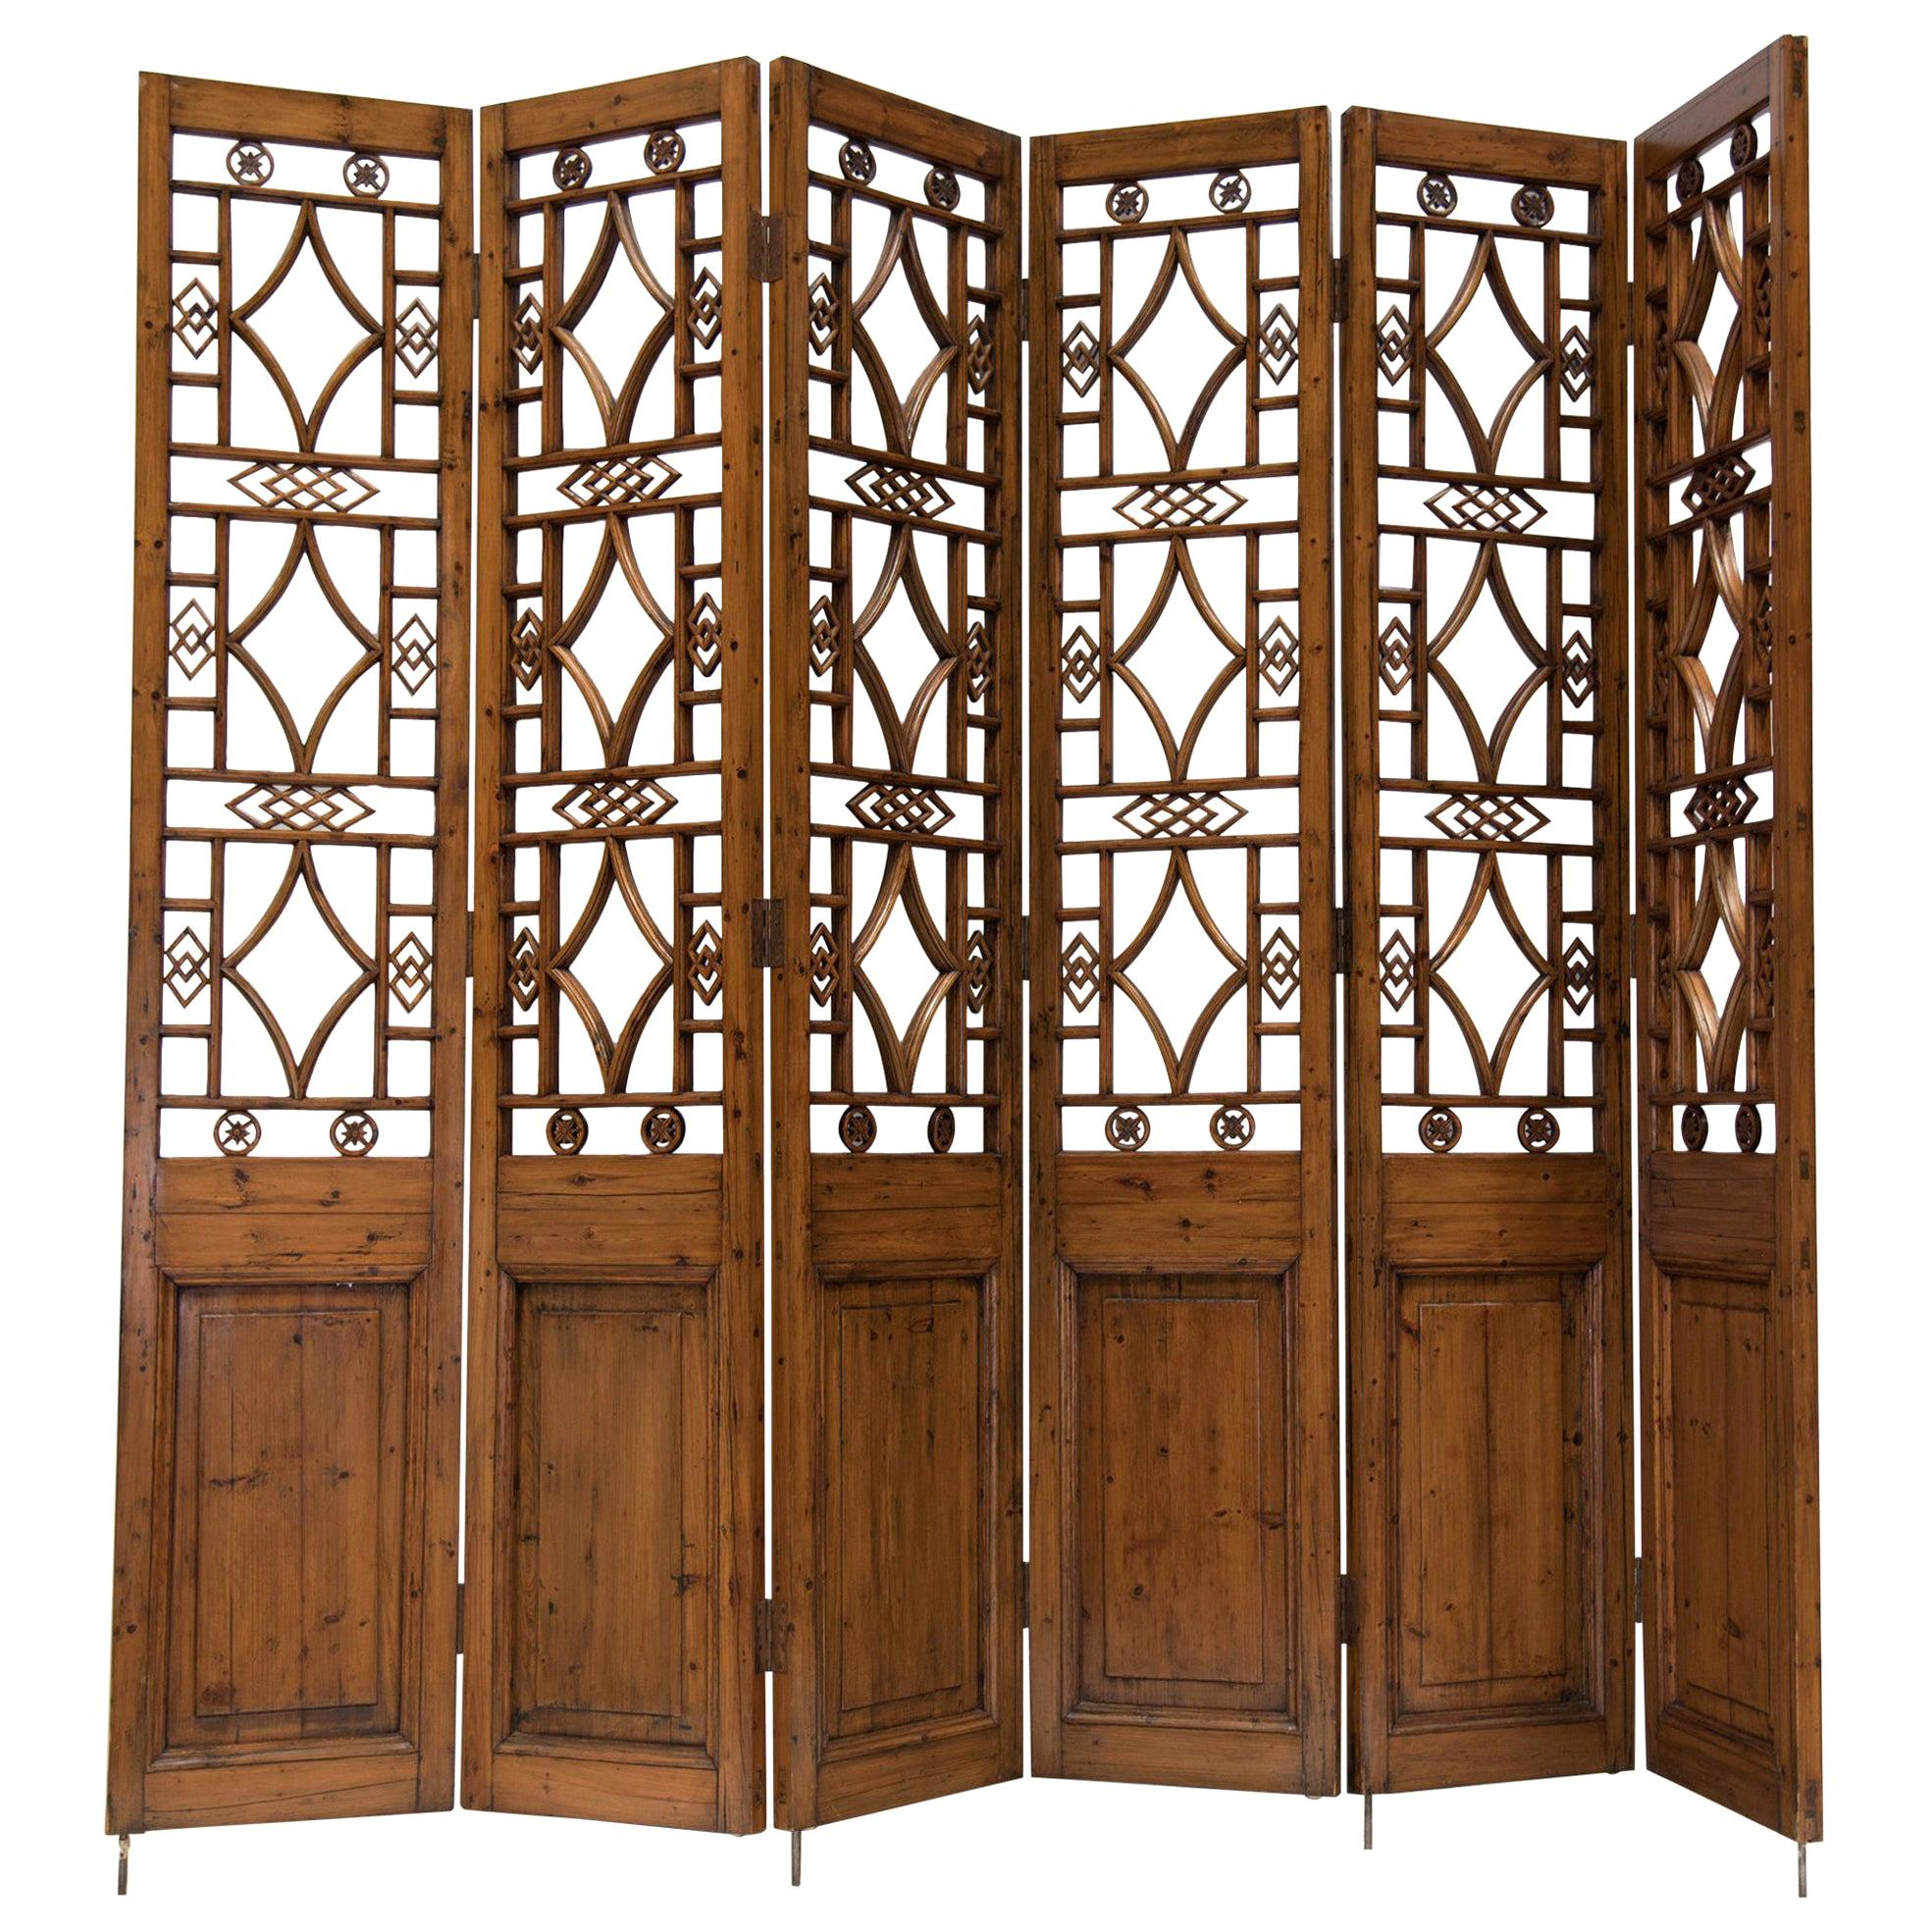 CHINESE 6-PANEL Sculptured Wooden Lattice Room Divider/Screen